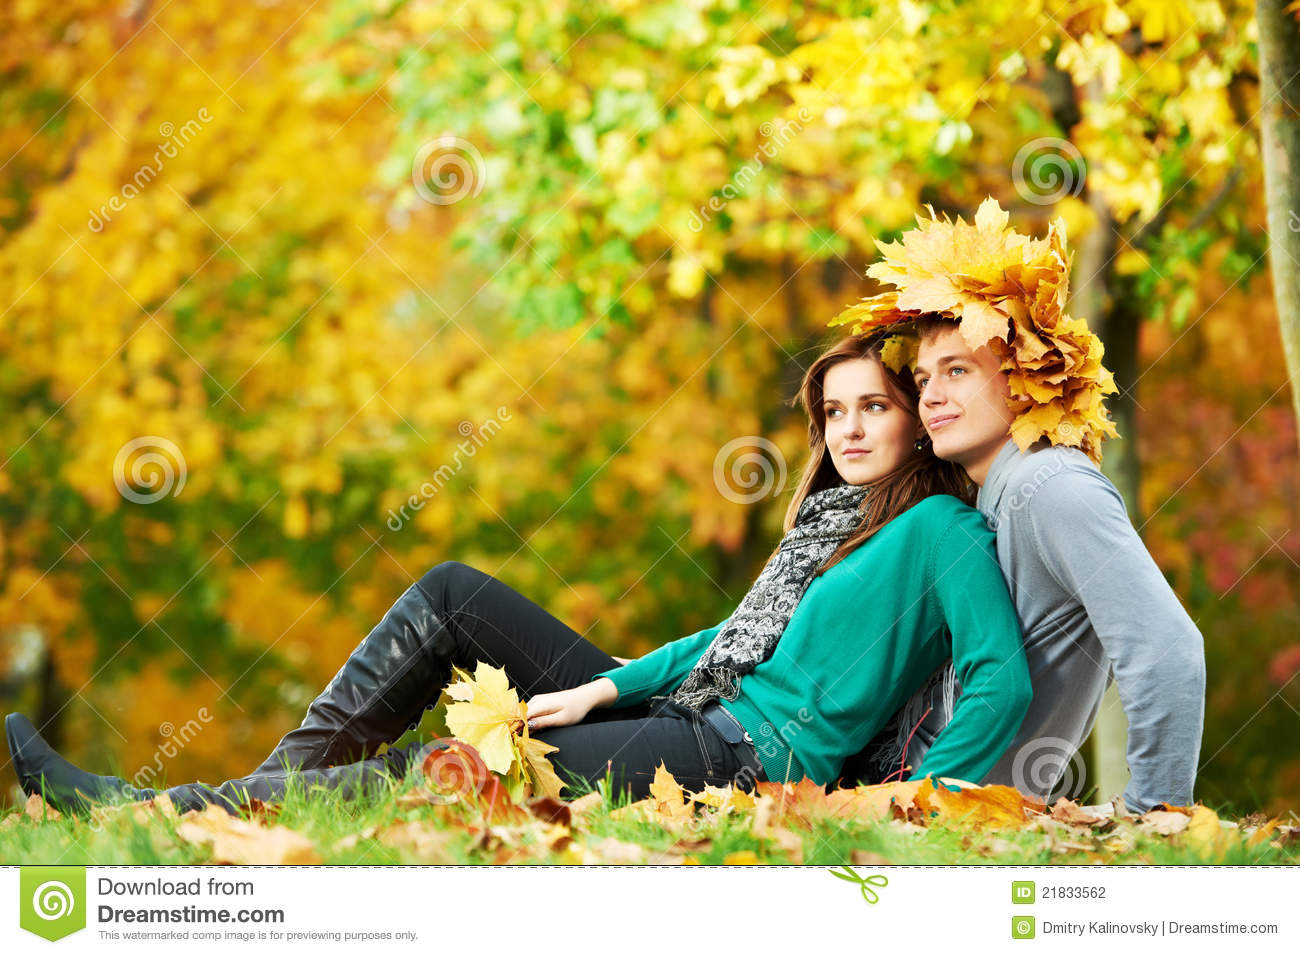 Cute Baby Couple Hd Wallpaper Couple At Autumn Outdoors Stock Photo Image Of Attractive